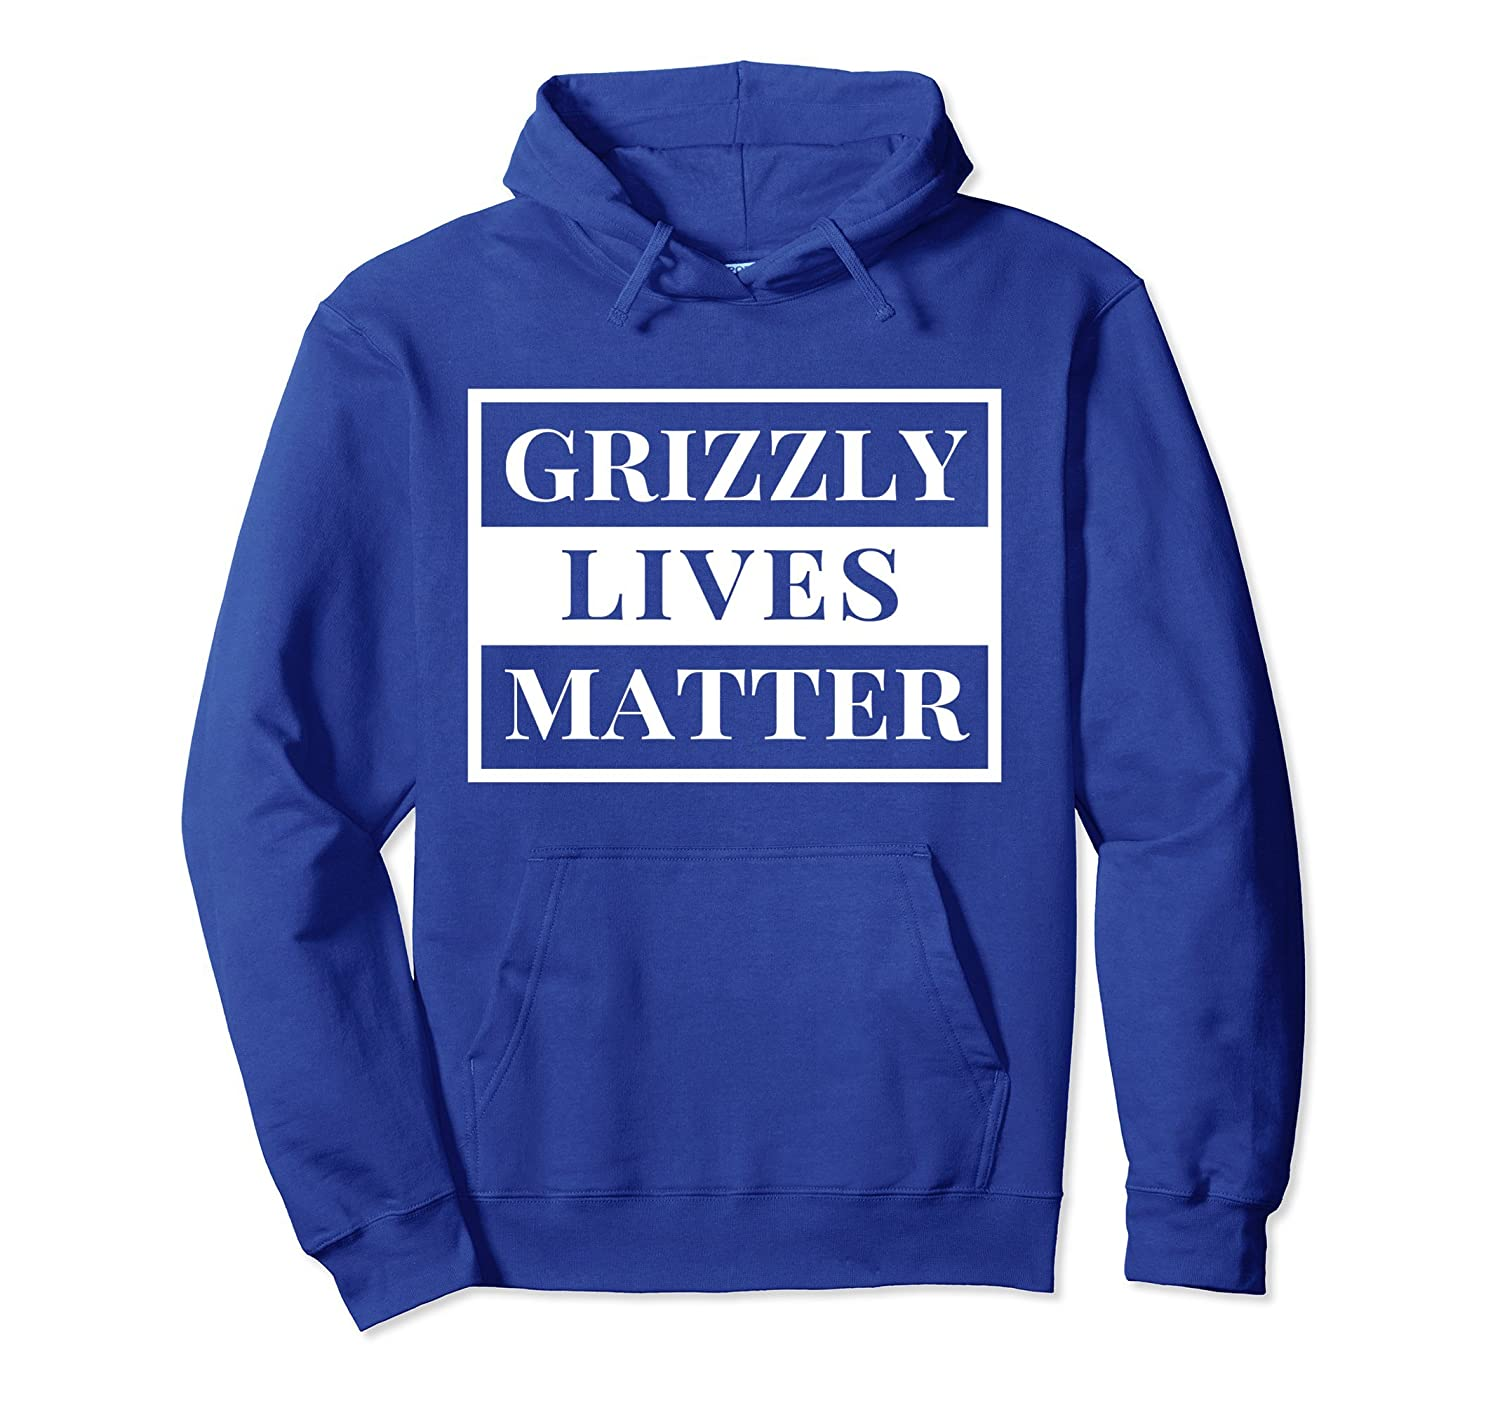 Grizzly Bear Hoodie Grizzly Lives Matter Hooded Sweatshirt-ah my shirt one gift